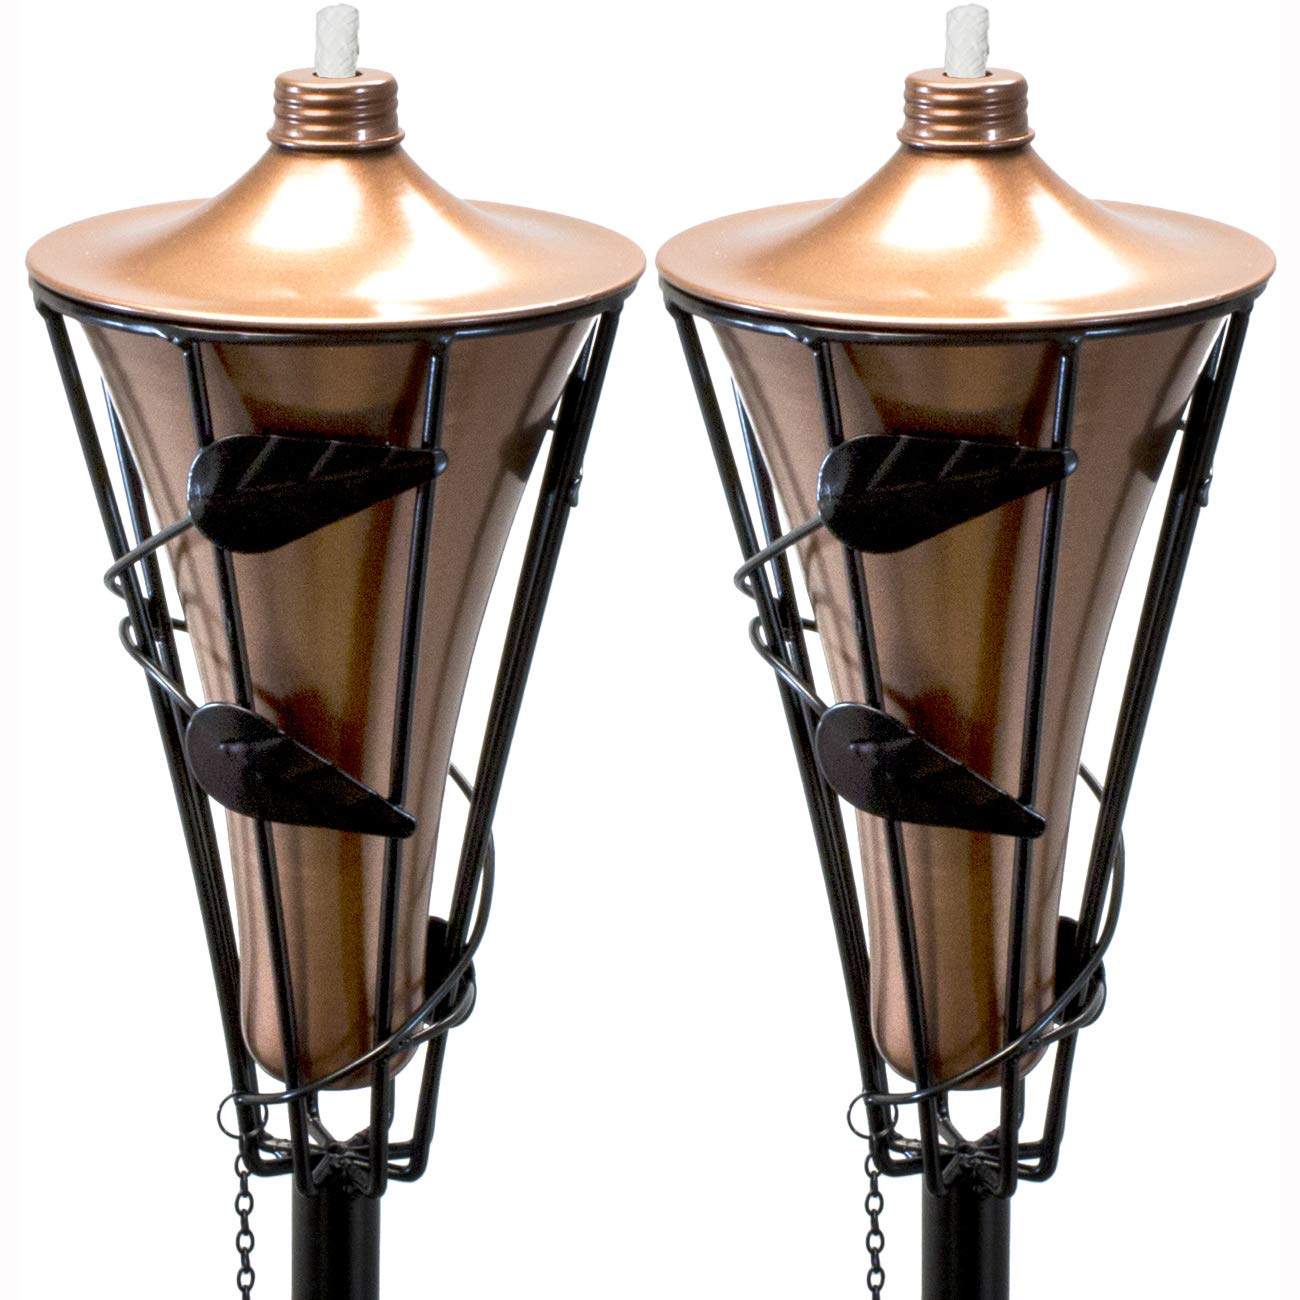 Matney Outdoor Metal Patio Torches – Use for Deck, Patio, Back Yard, Out Door parties, Wedding – Includes Fiberglass Wick and Snuffer Cap (60 Inch, 2 Pack)